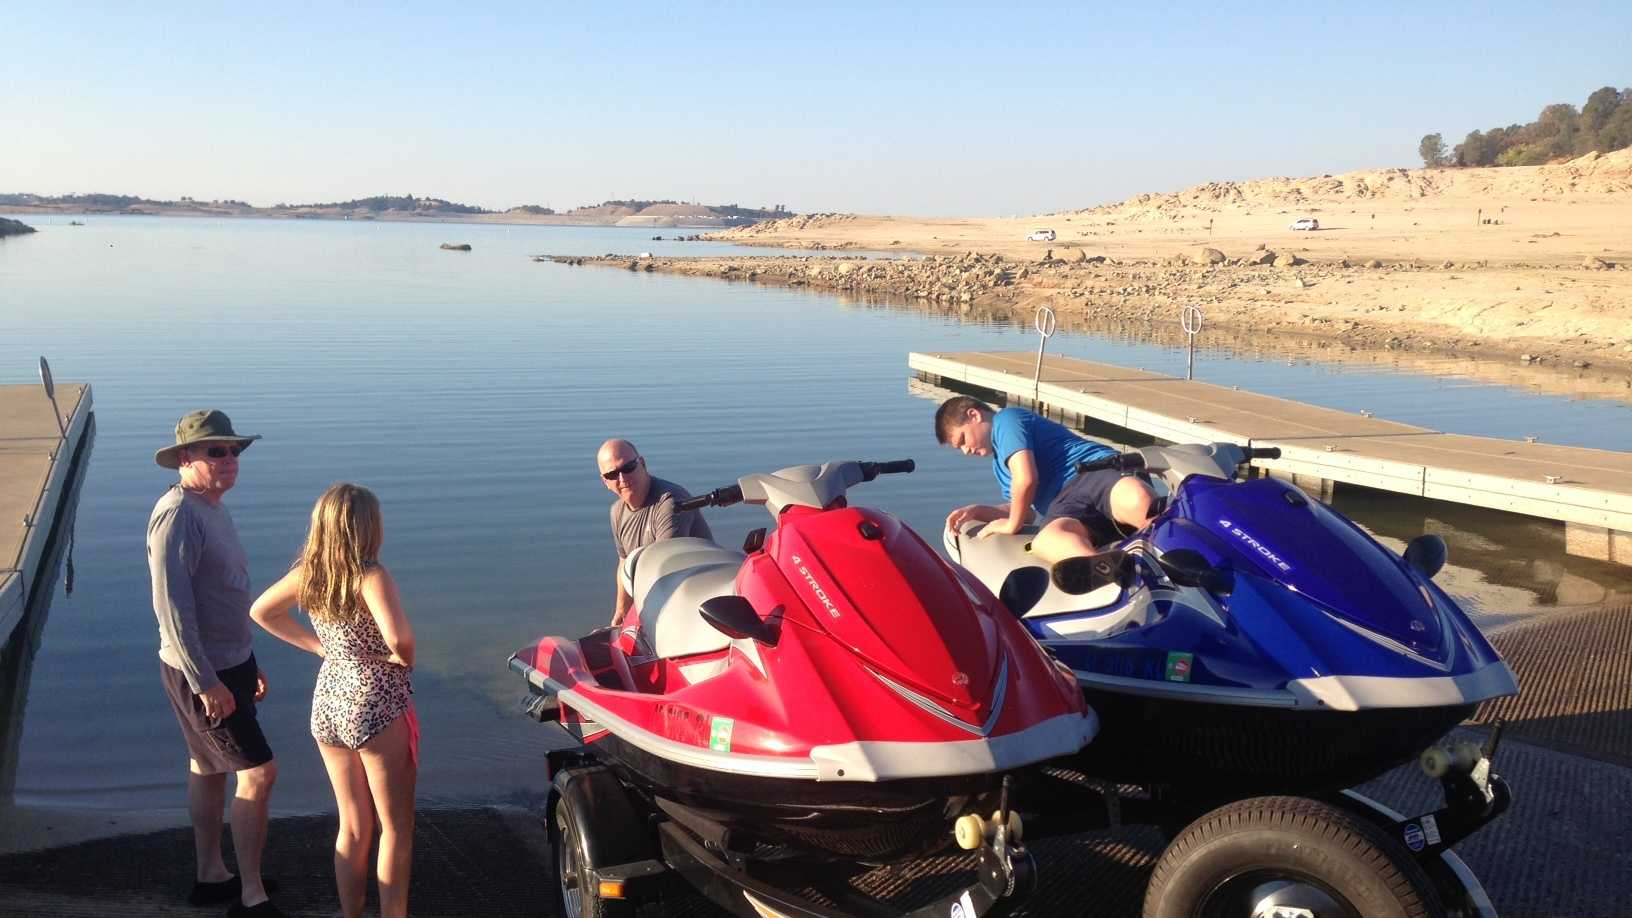 Boating Folsom Lake